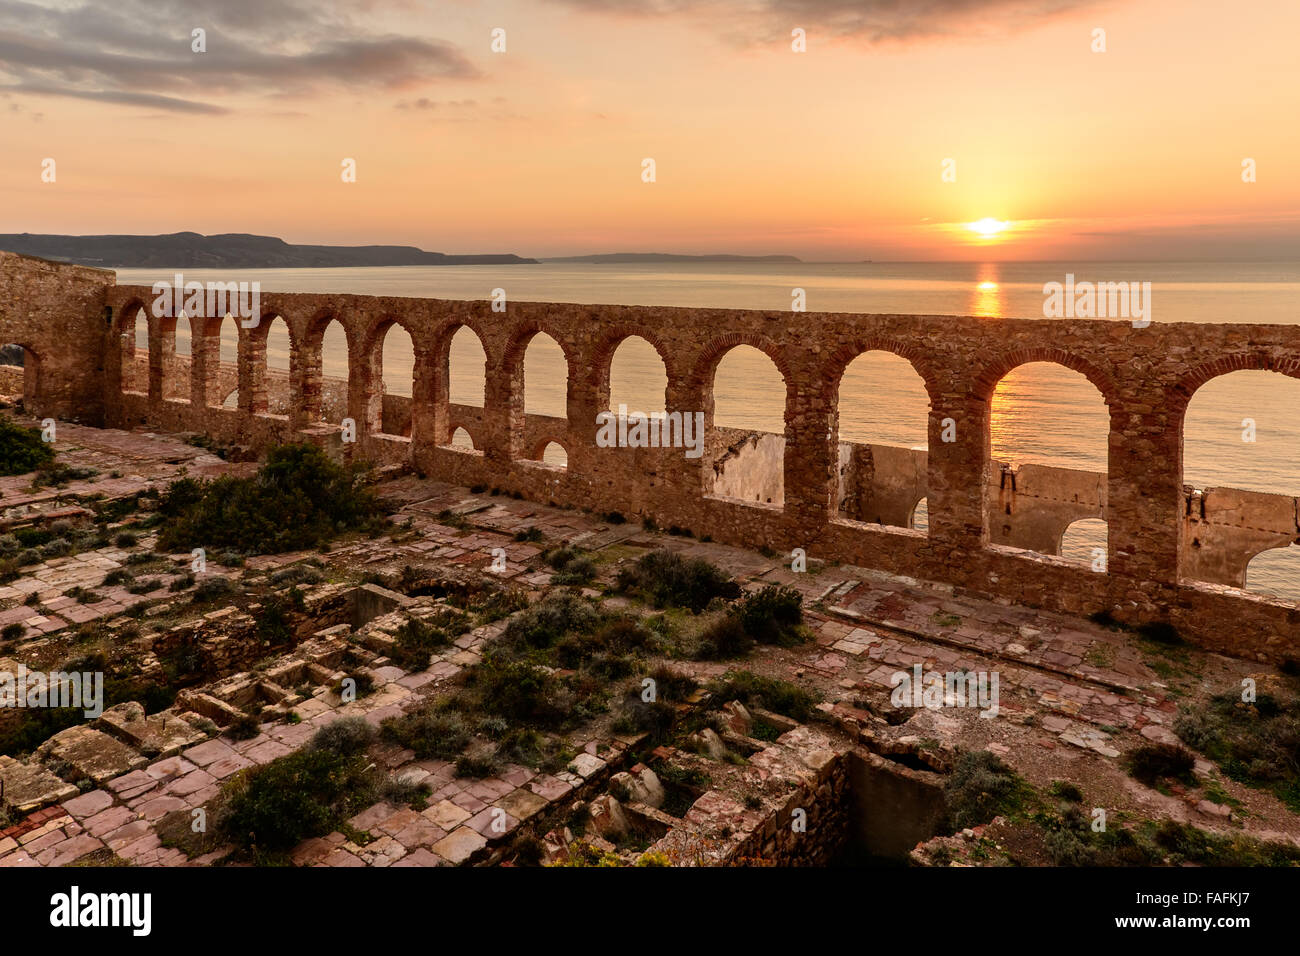 Ruins of industrial mining along the west coast of Sardinia. Panorama at sunset. The Marmora washery. - Stock Image